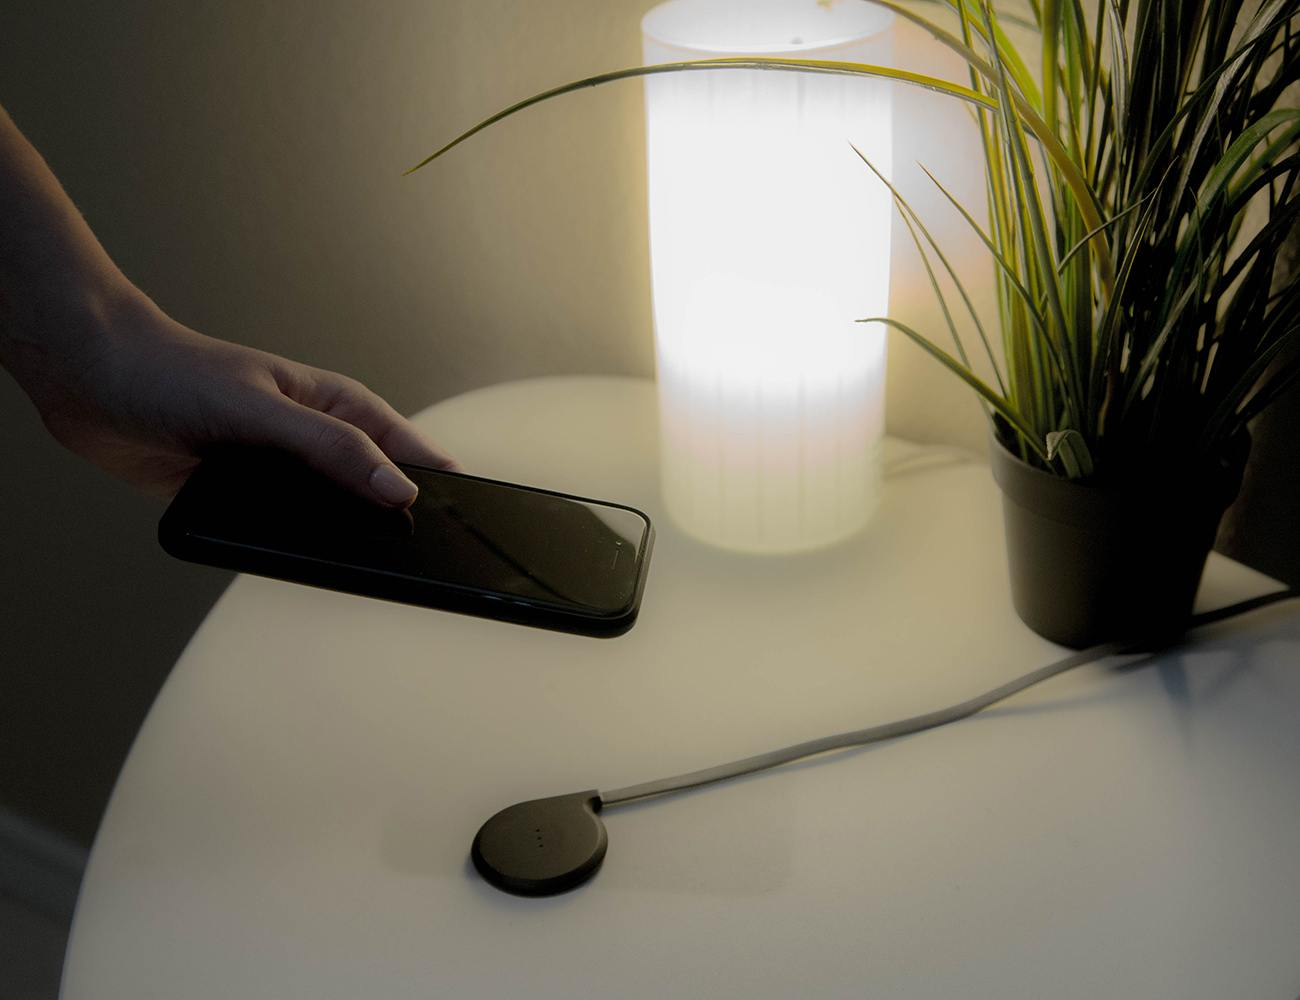 NOCABLE Wireless iPhone Charging System